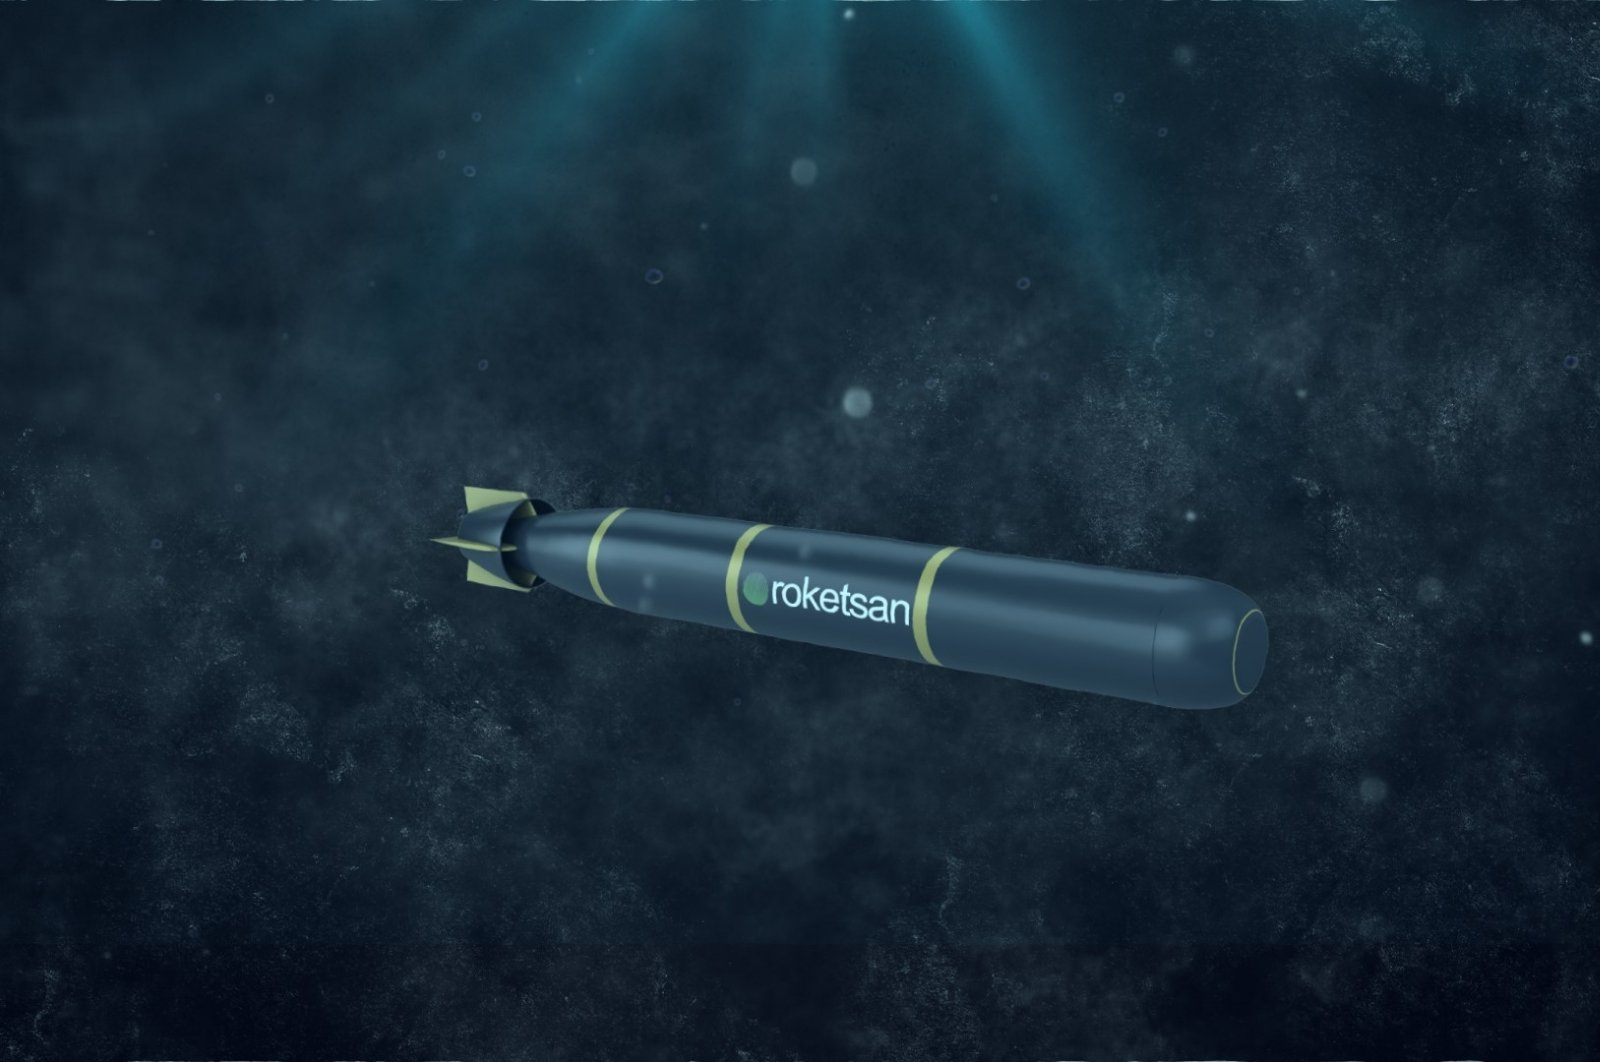 An artist's impression of the torpedo to be developed under Project Orka, Dec. 27, 2020. (Photo by SSB via AA)